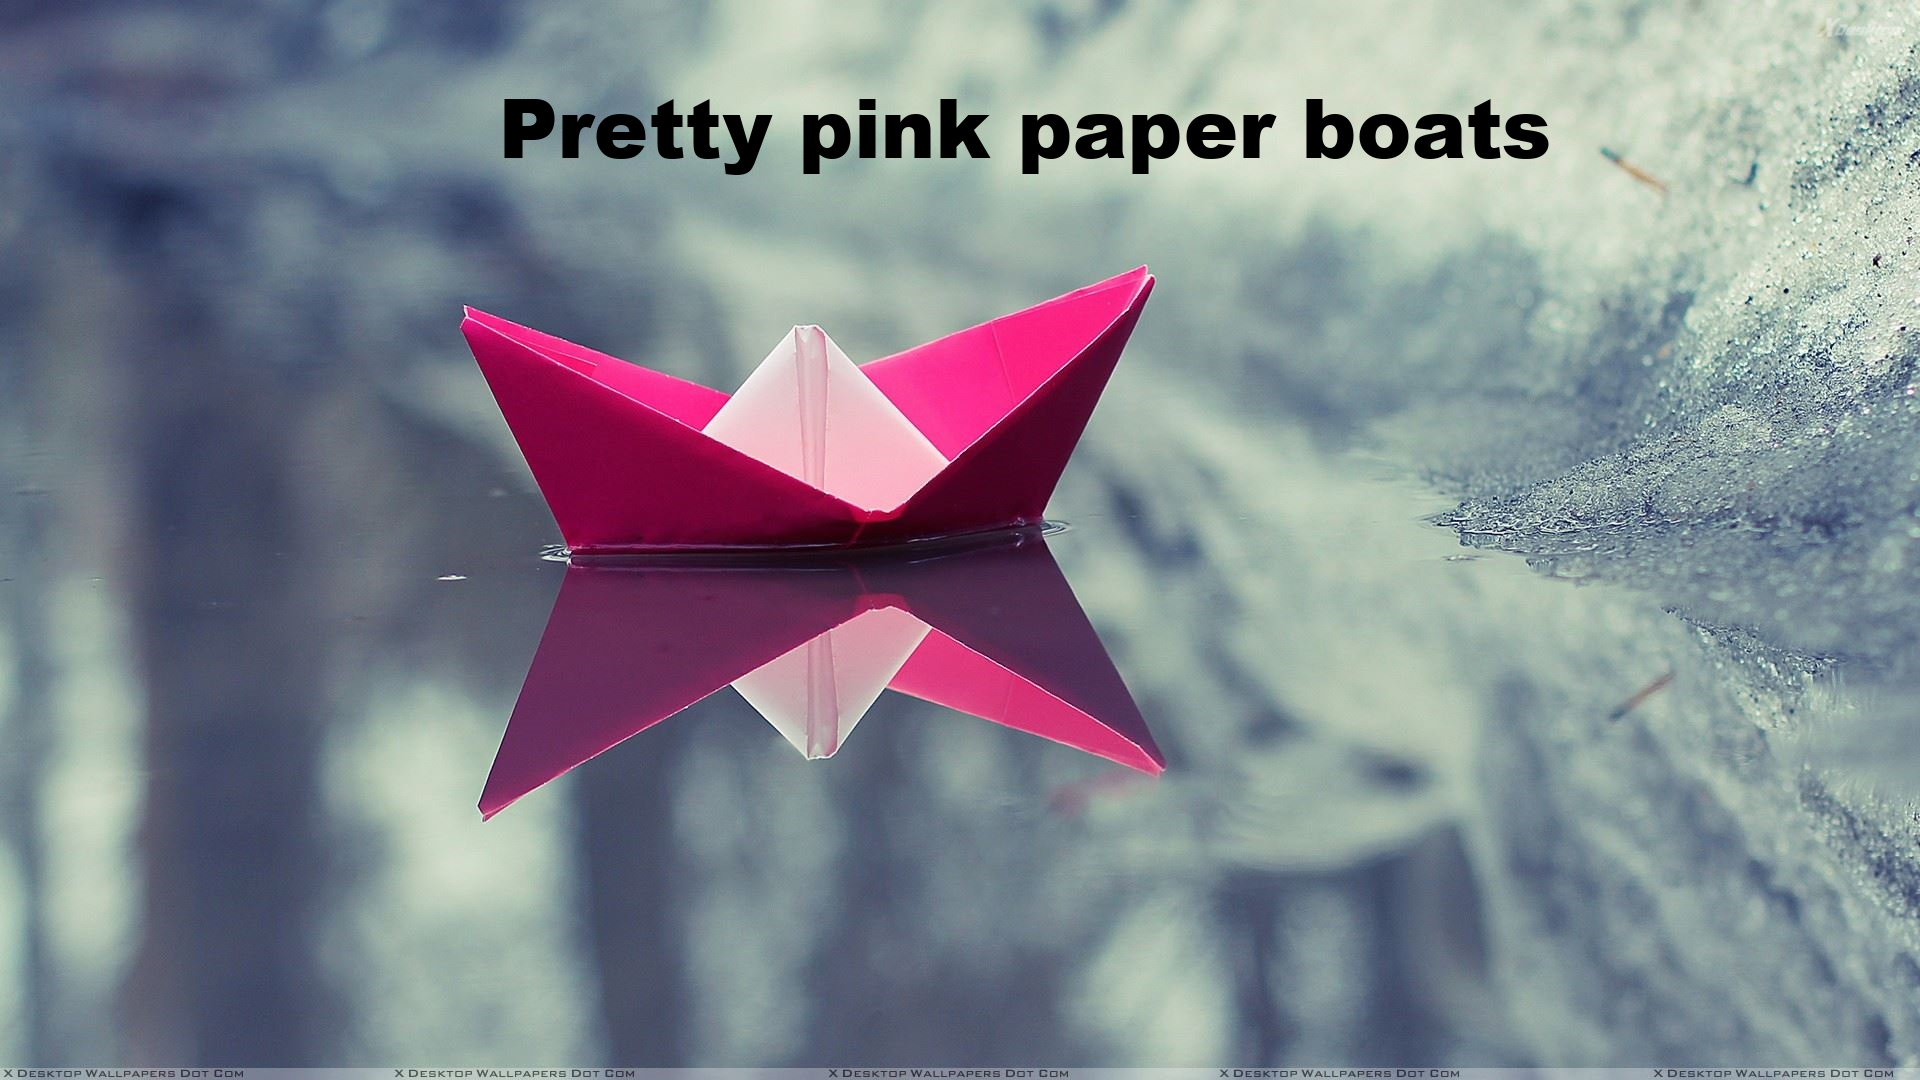 A little pink paper boat